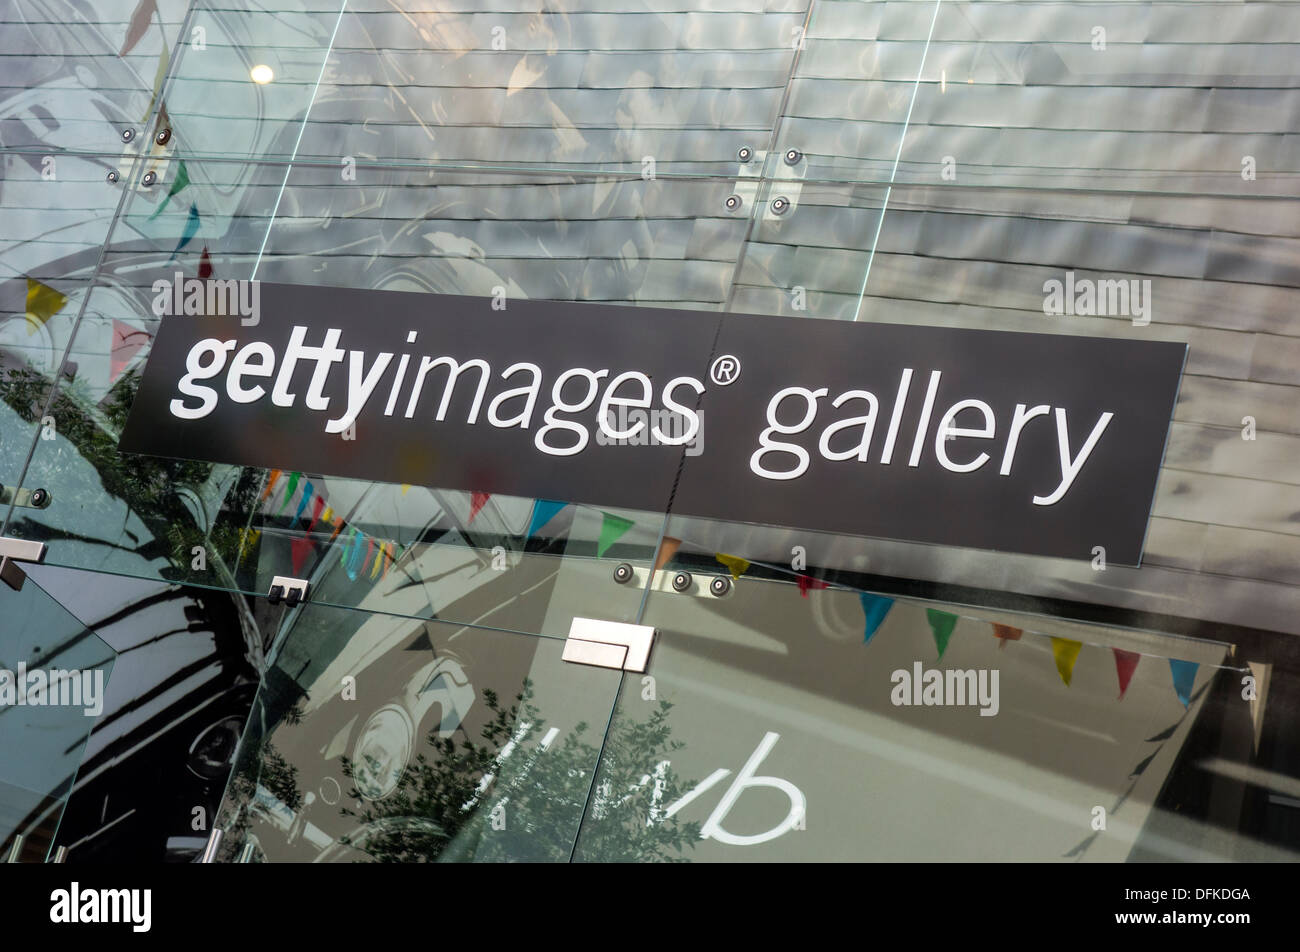 Getty Images Gallery Westfield Shopping Centre Stratford City - Stock Image